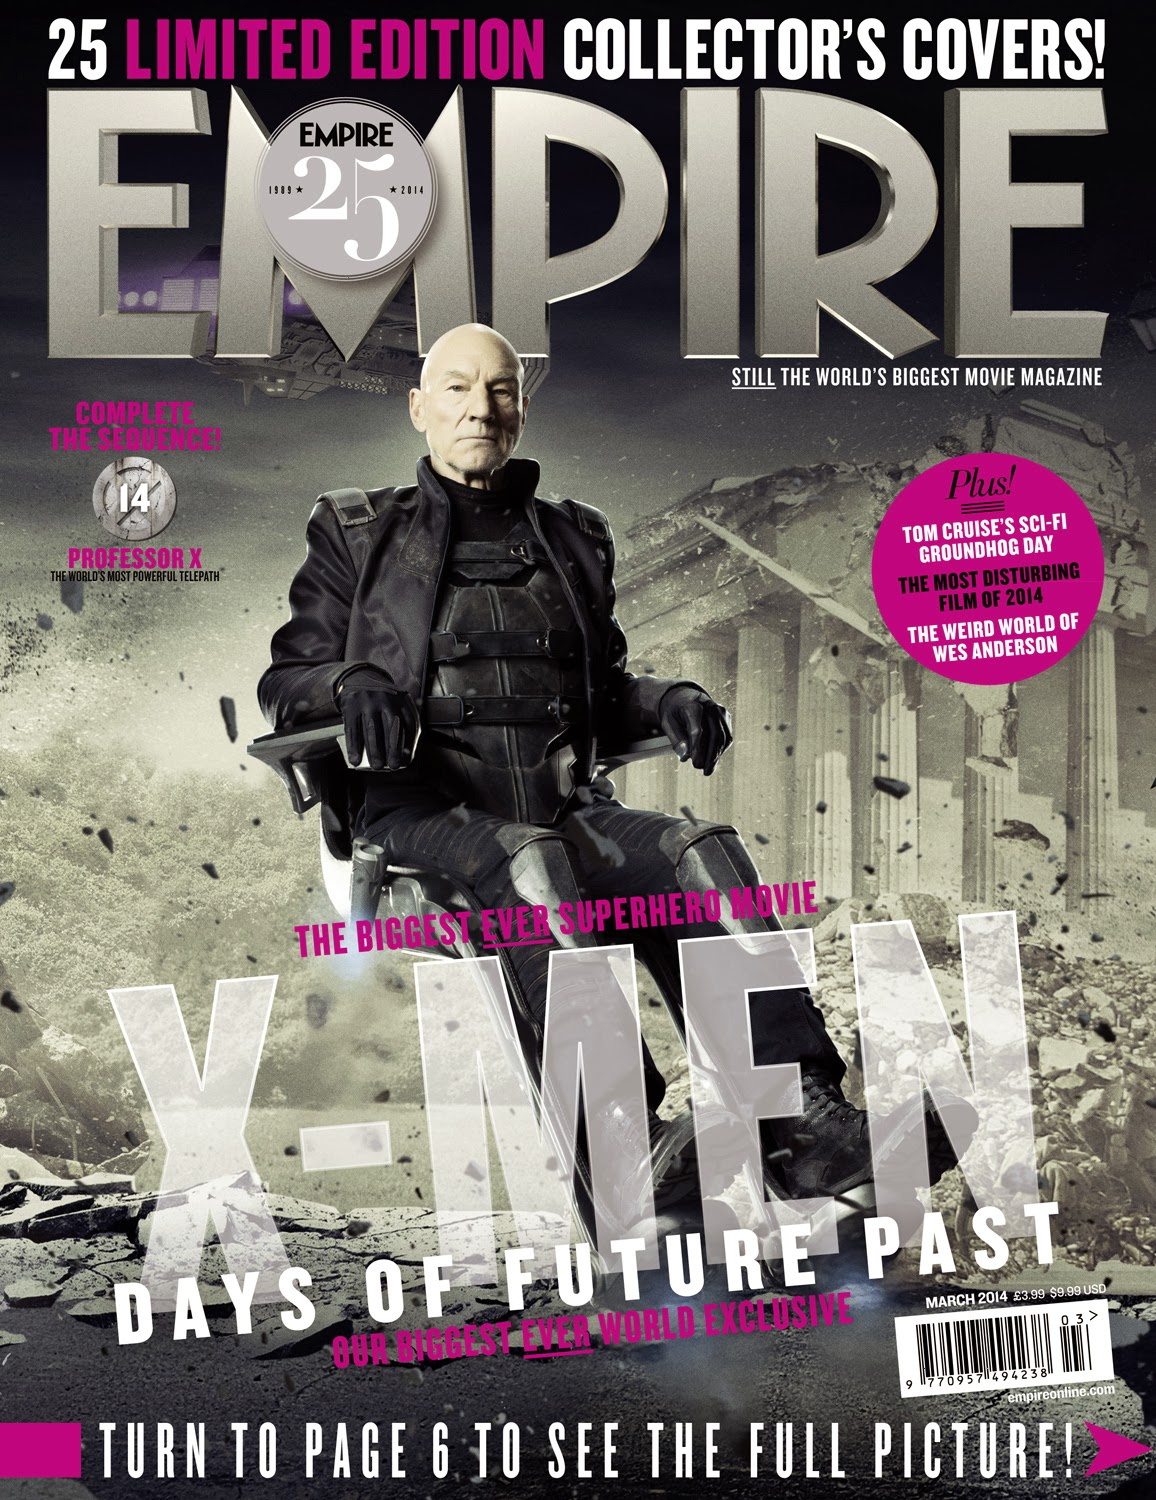 X-Men Days of Future Past Covers from Empire Magazine Now ...